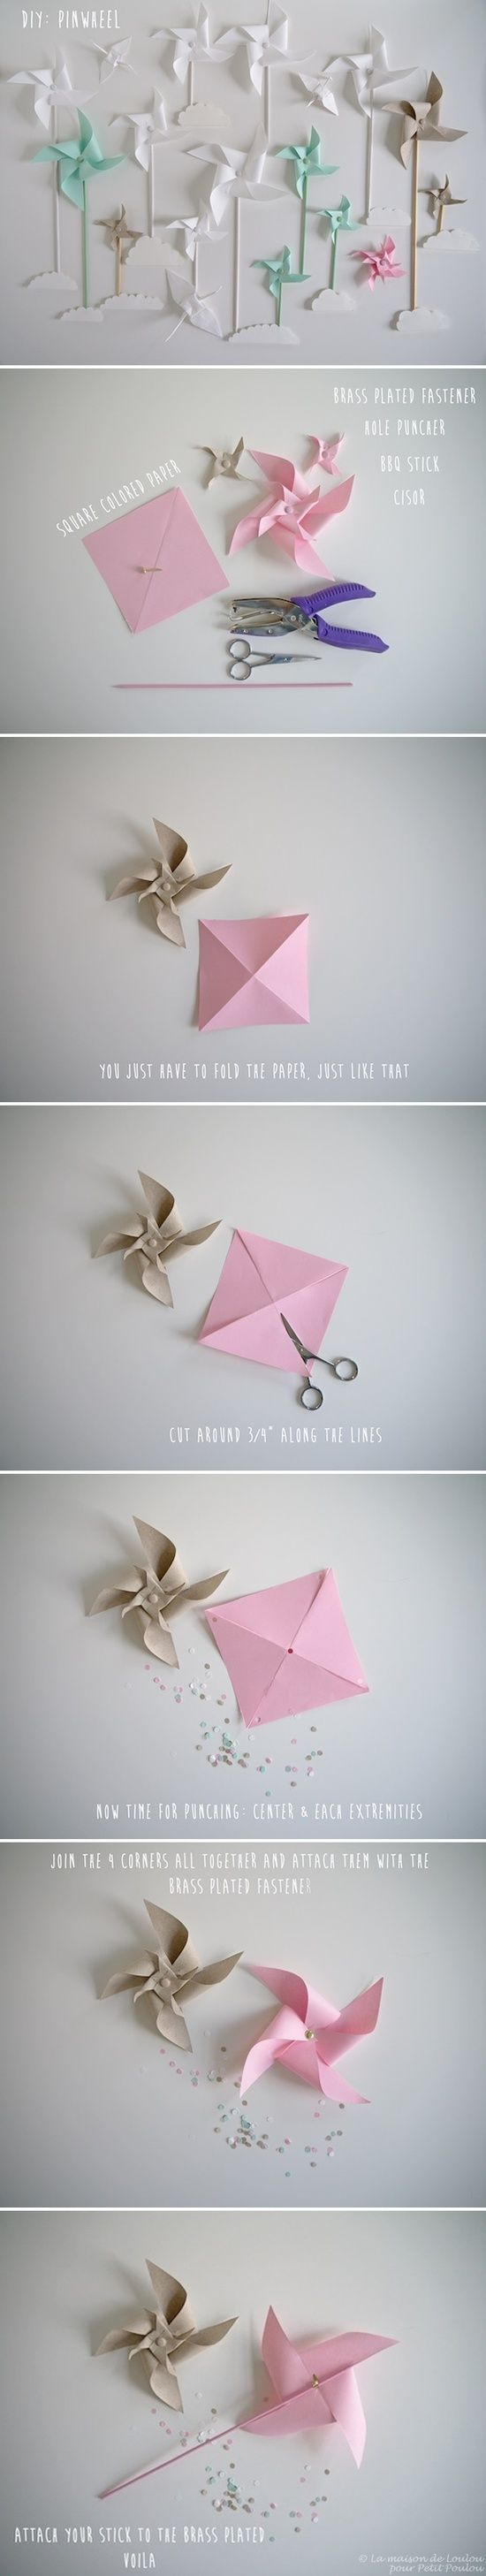 206 best Suggestions for Celebrations images on Pinterest | Garlands ...